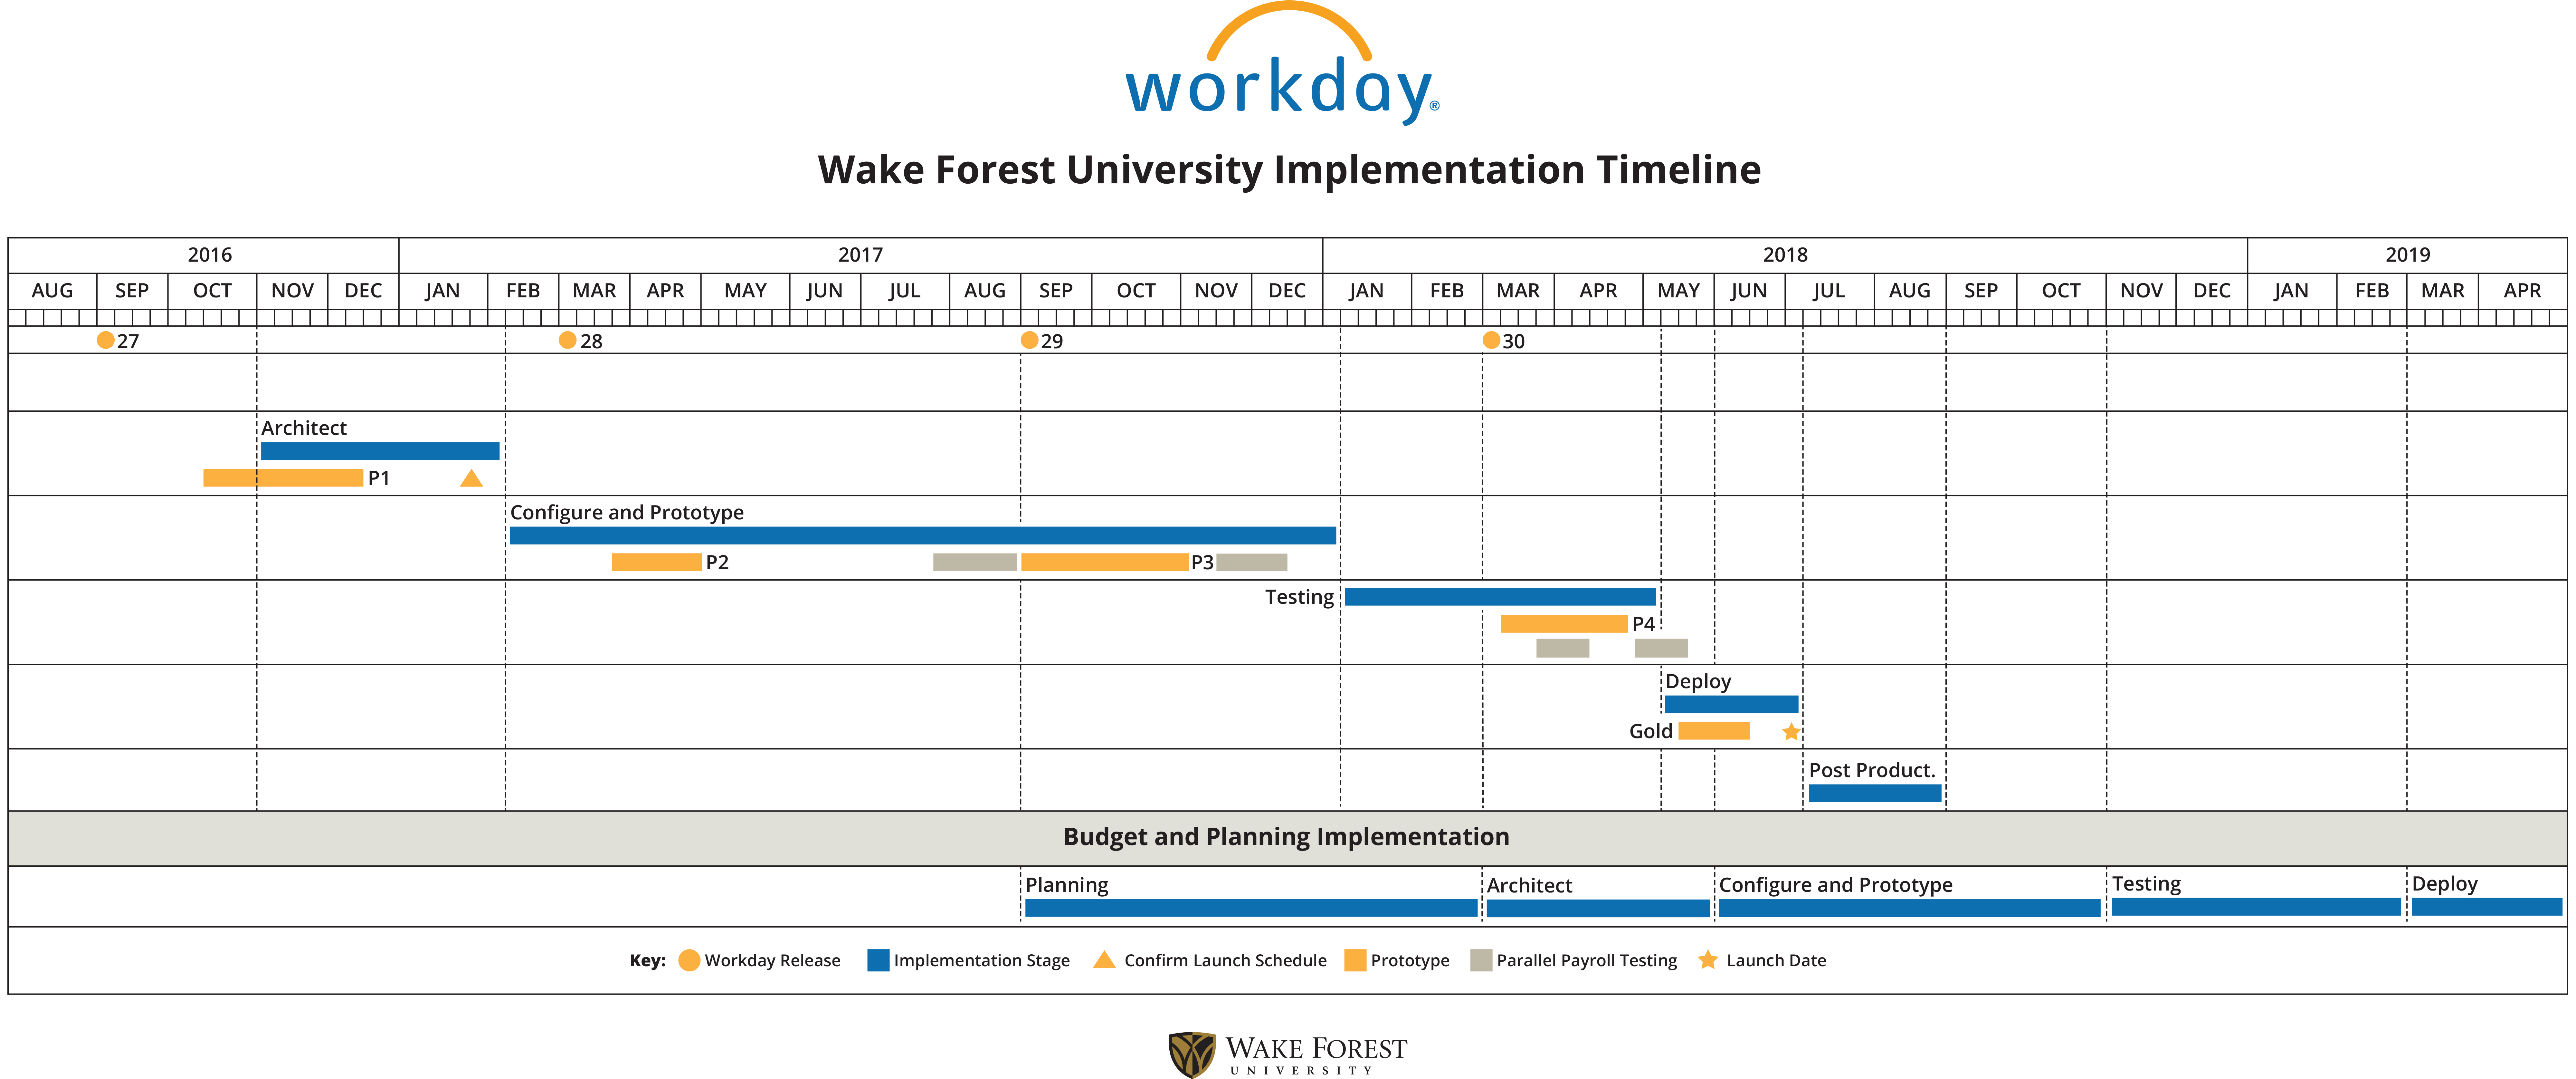 WFU workday implementation timeline july 2018 launch